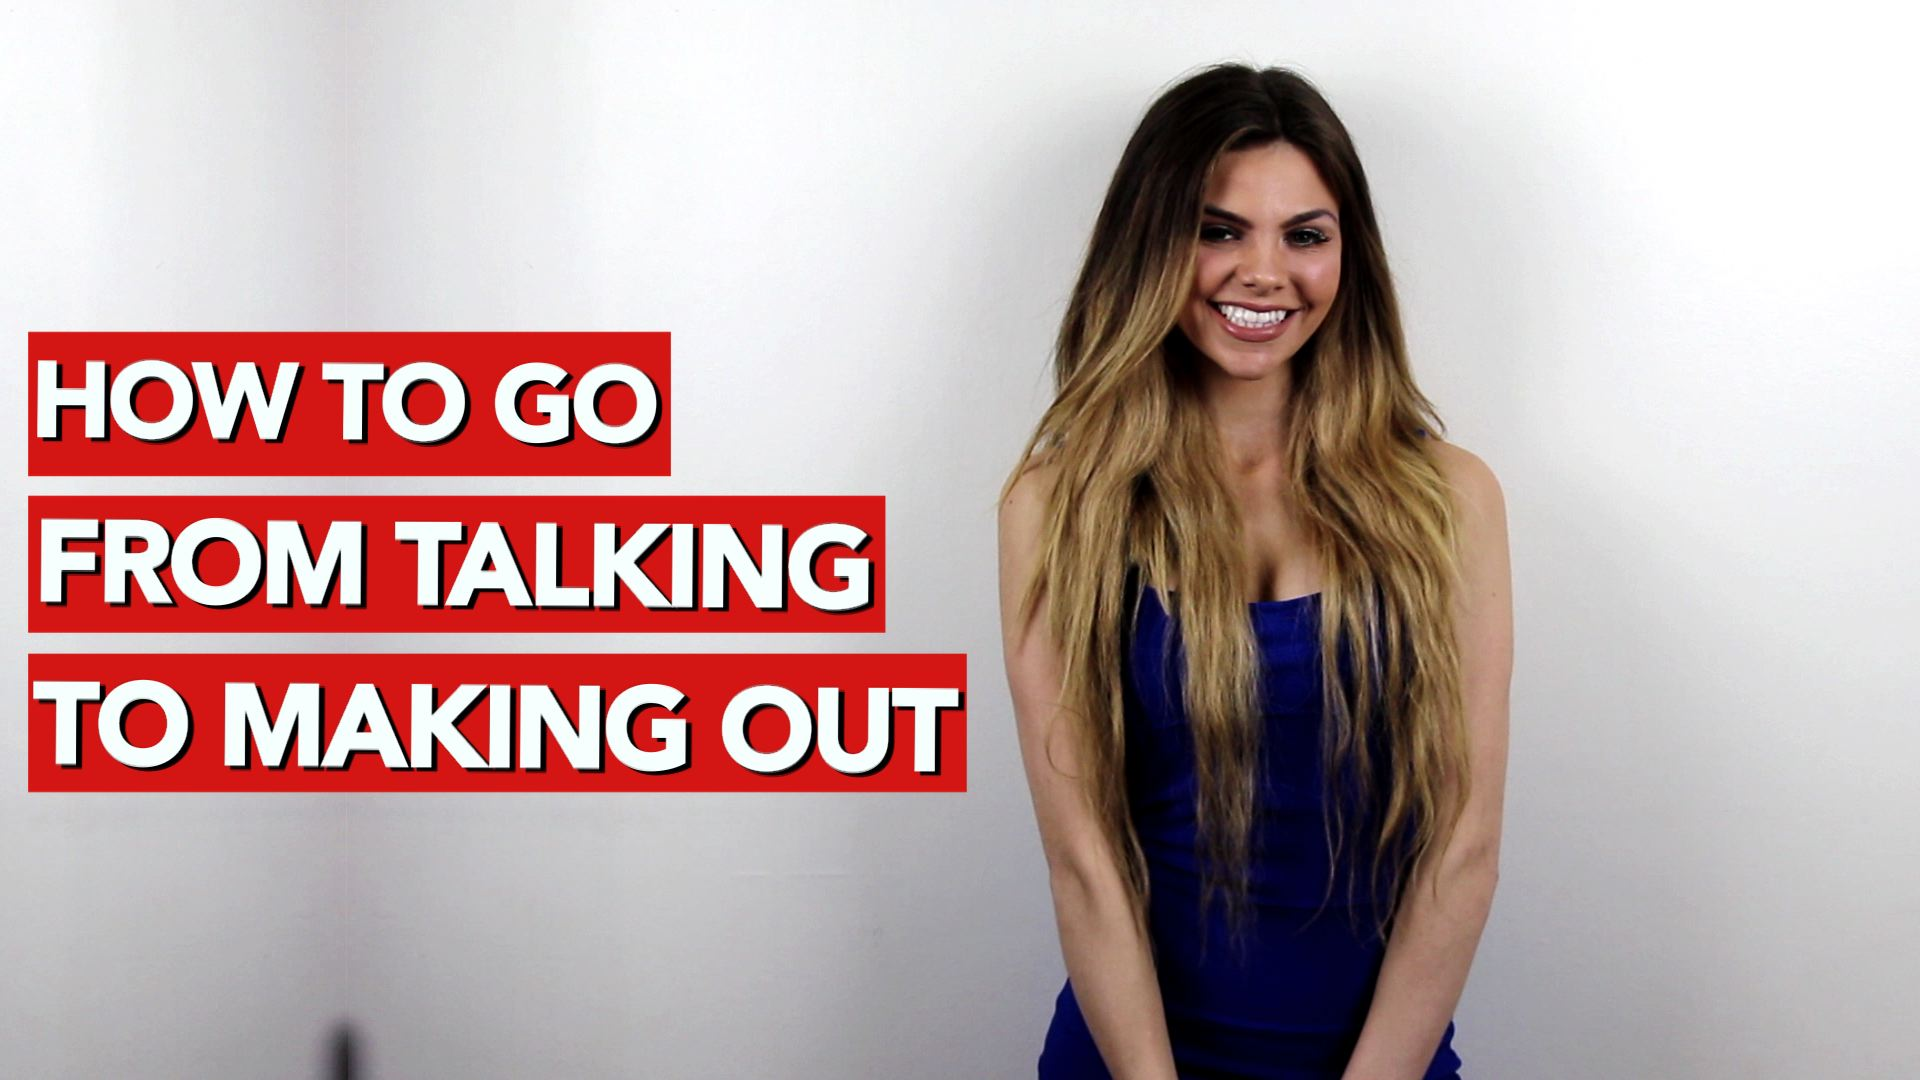 How to Go From Talking To Making Out